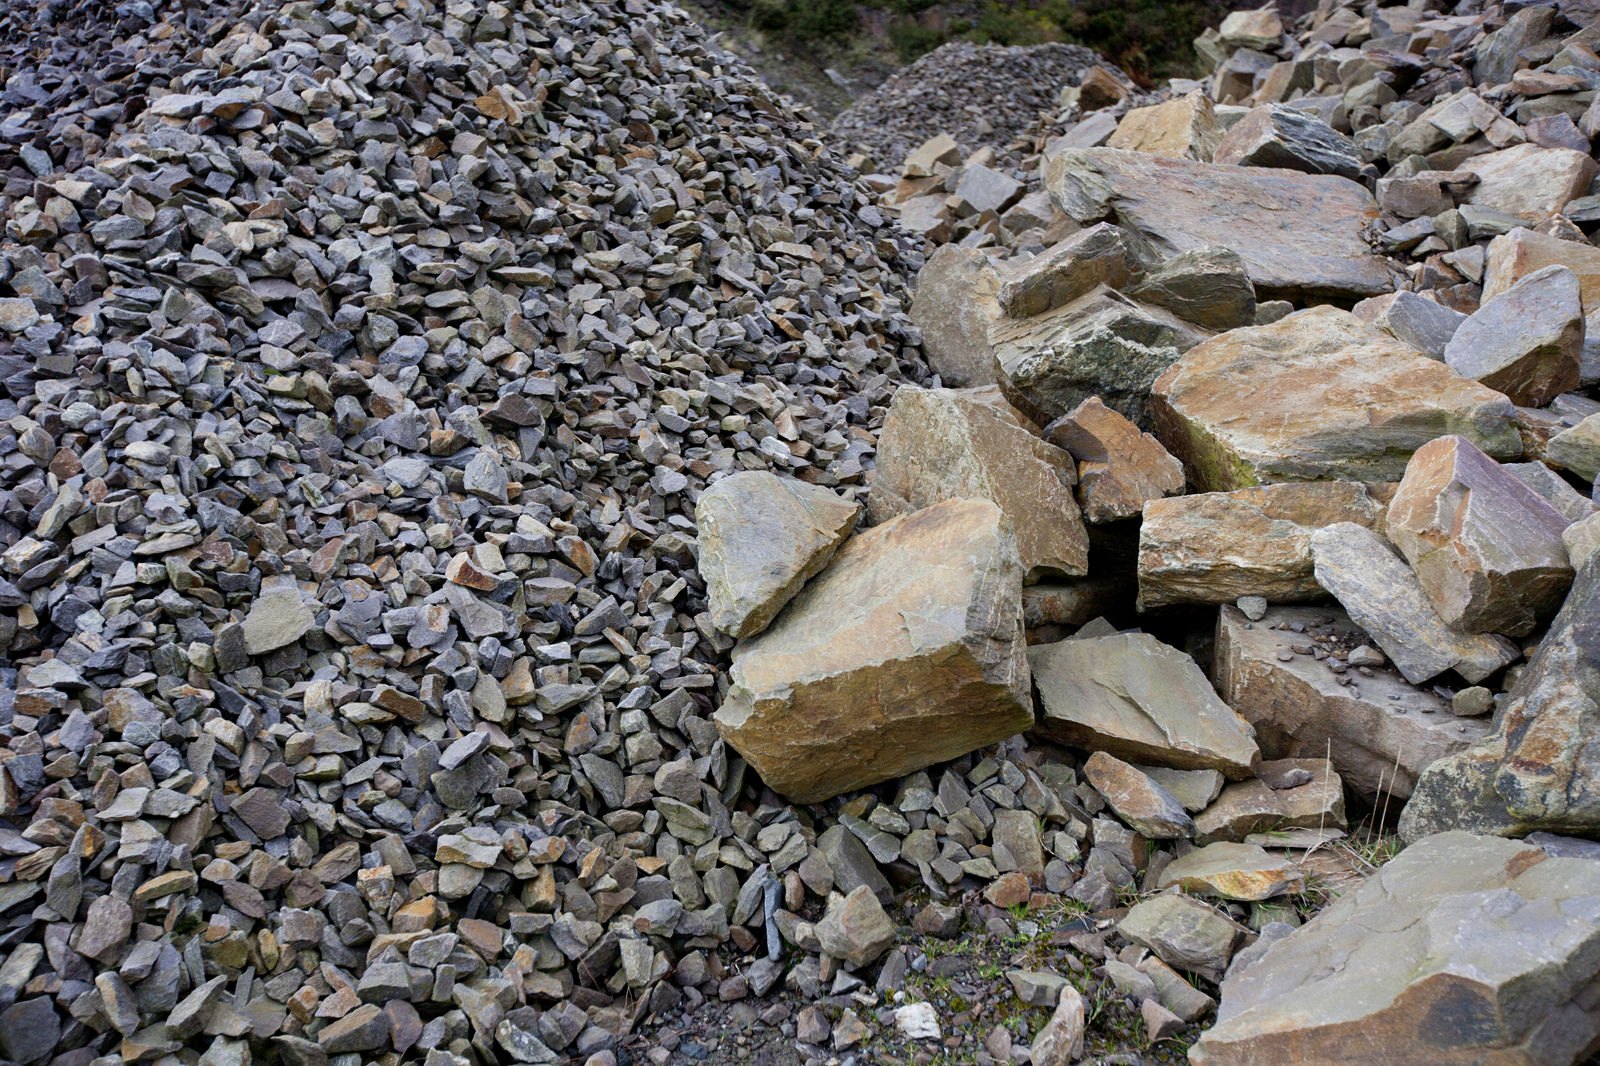 Close-up of different sized piles of rocks